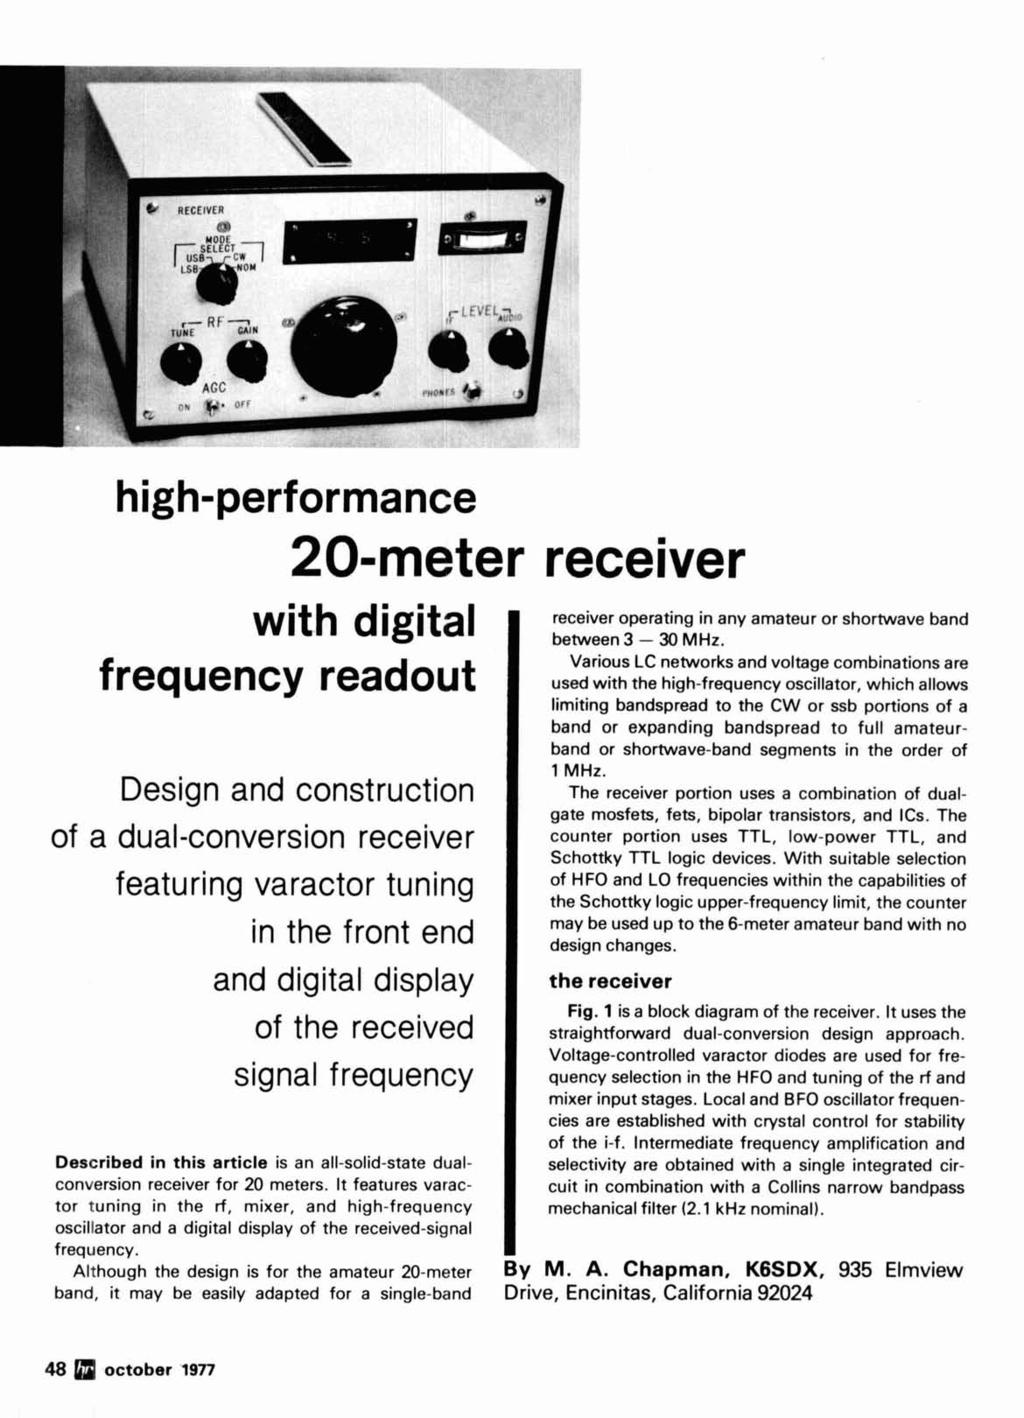 Radio Kilowatt October Syllabic Vox System Ghz Mixer Meter Receiver Thomas Henry 555 Vco Circuit Working Outs High Performance 20 With Digital Frequency Readout Design And Construction Of A